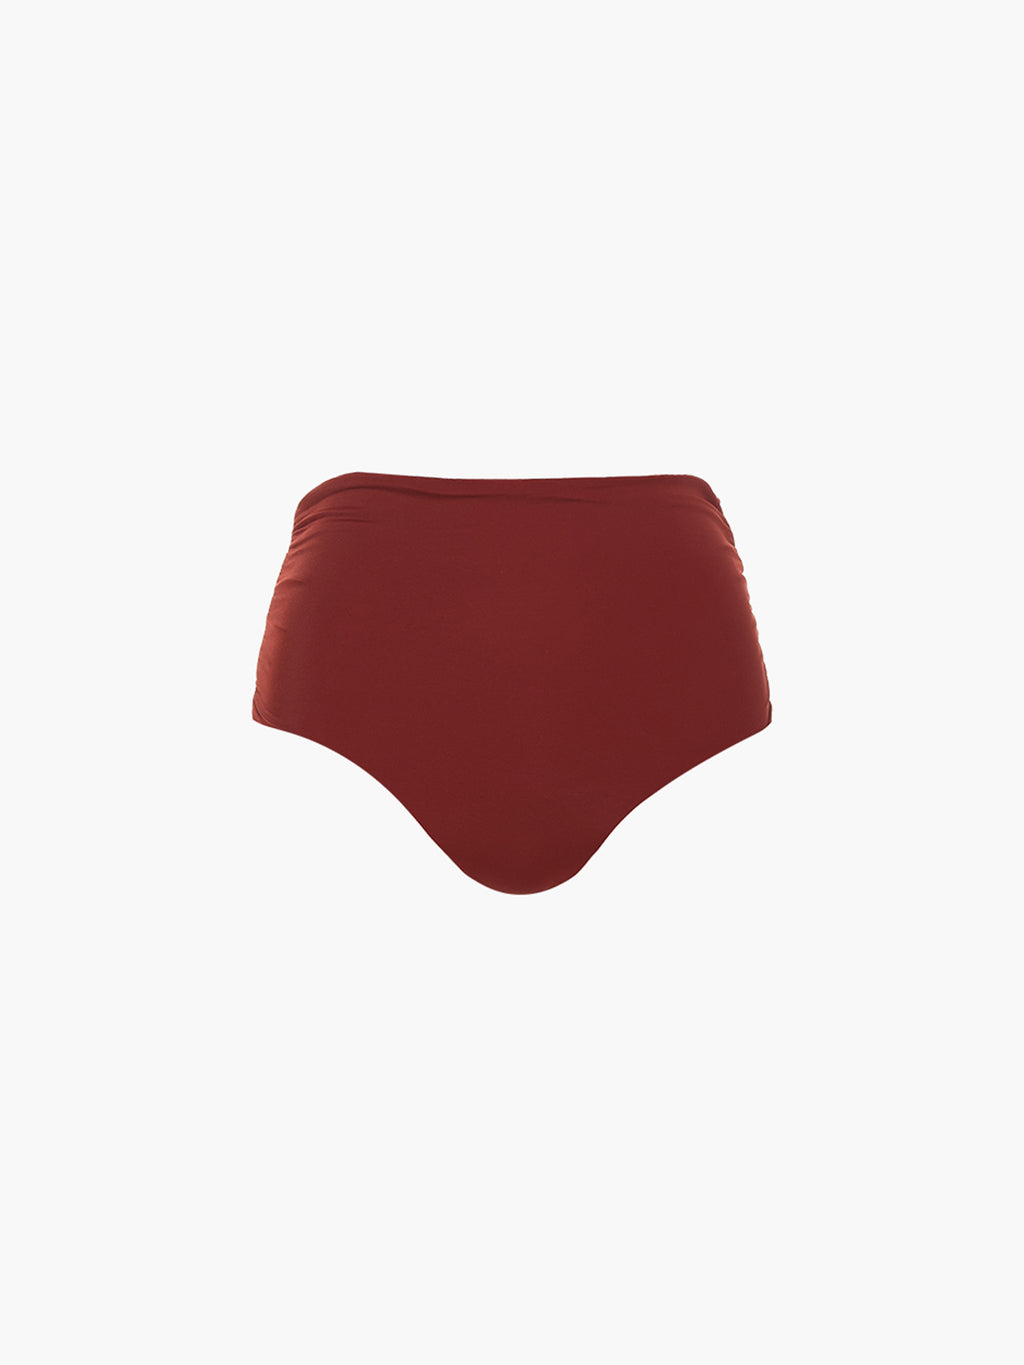 Tejada Vintage Bottom | Wine/Rose Mangos